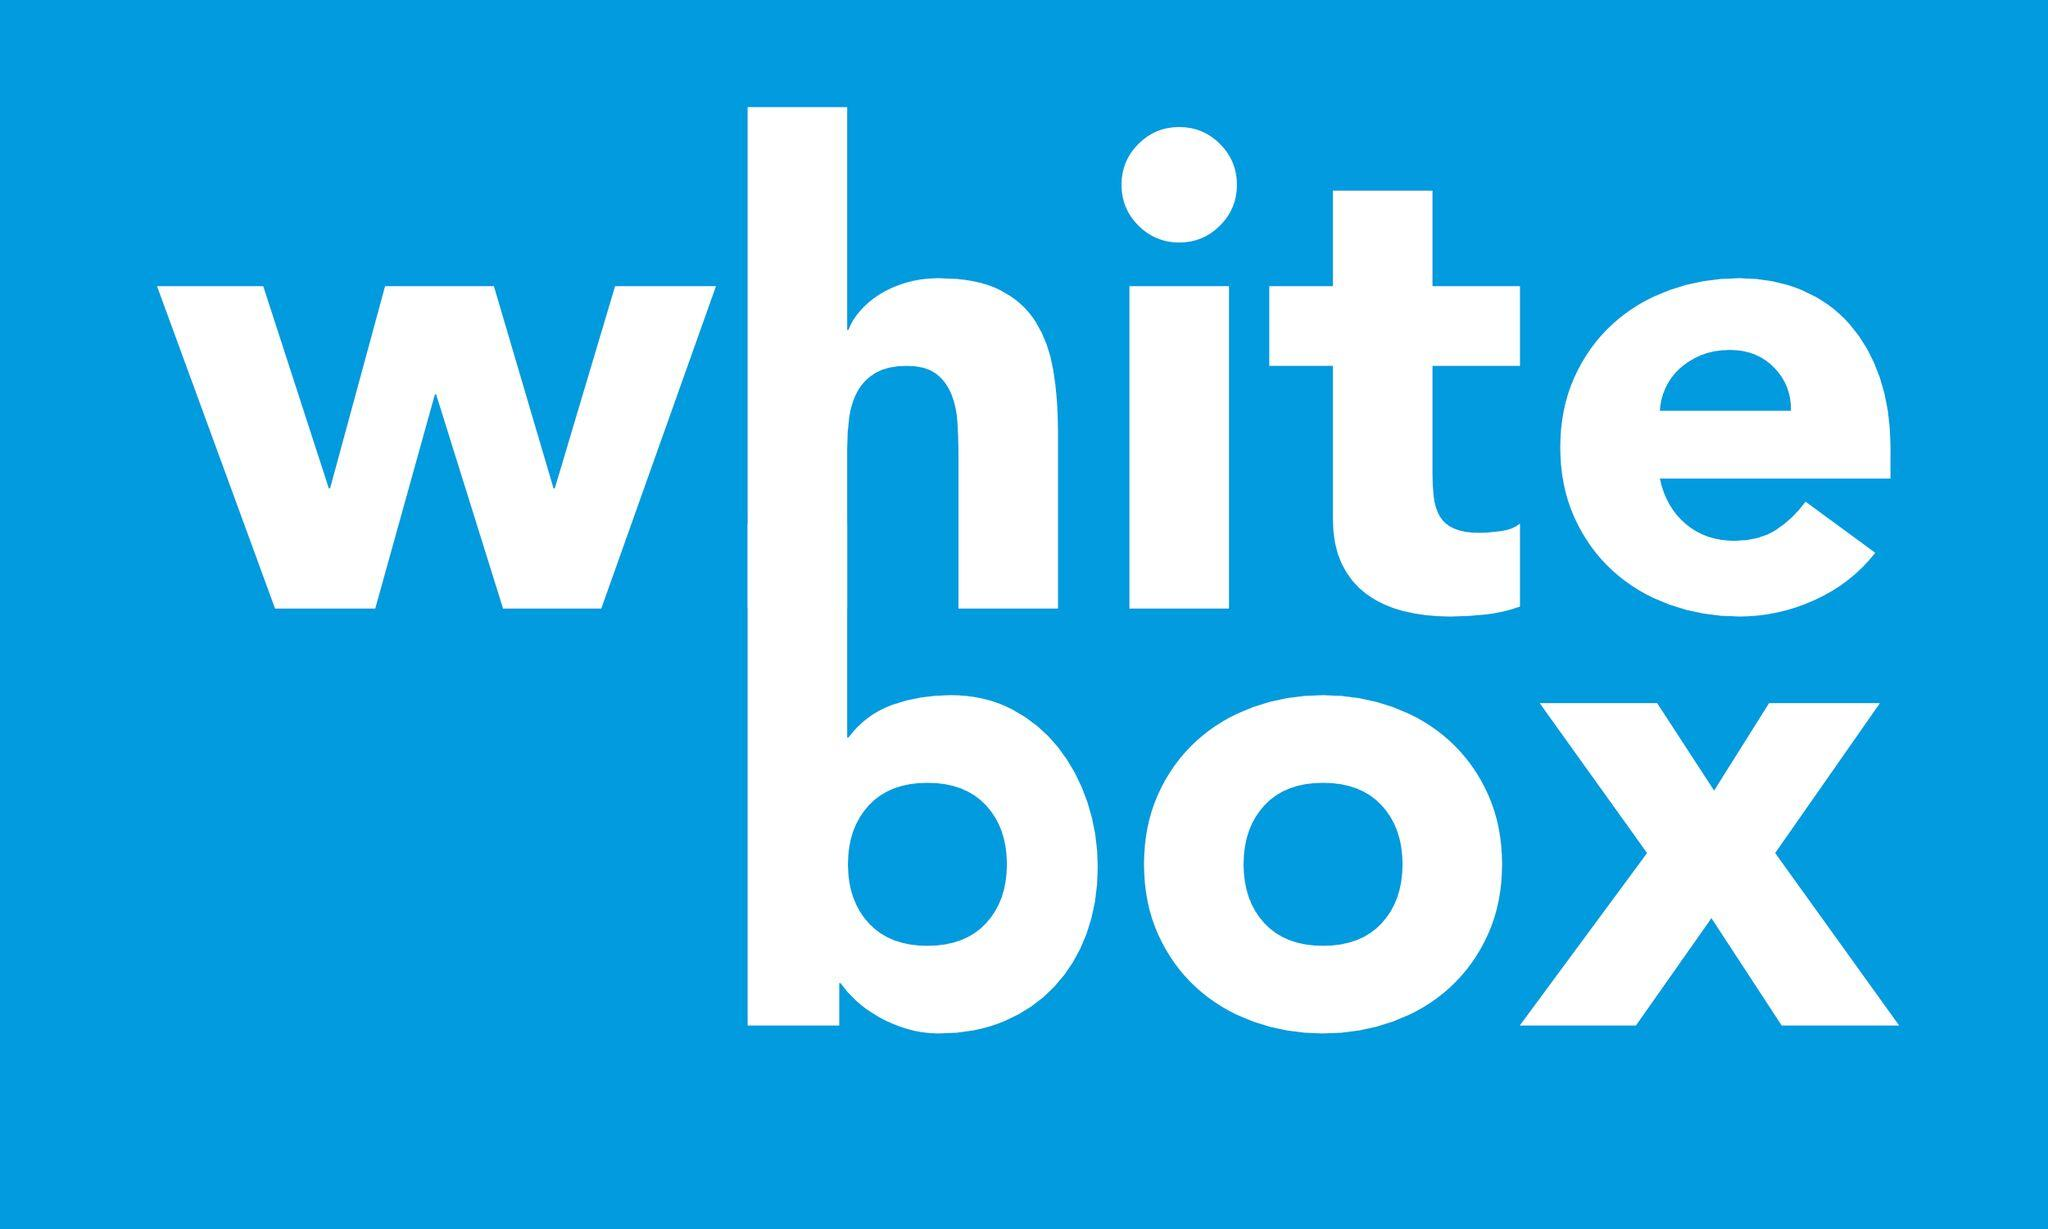 Whitebox.jpeg